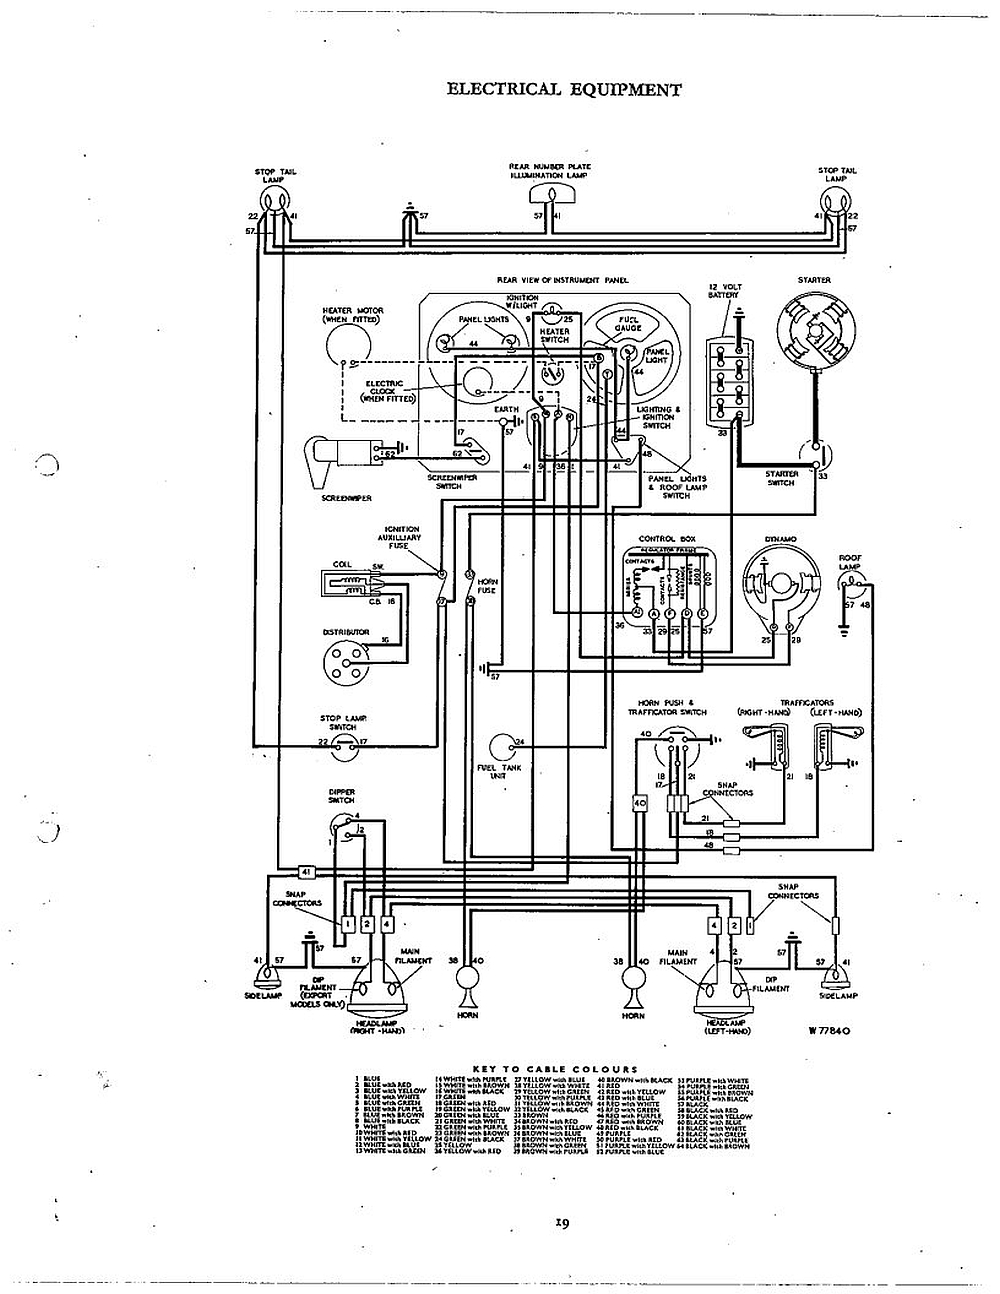 Triumph Tr4a Wiring Diagram - Change Your Idea With Wiring Diagram